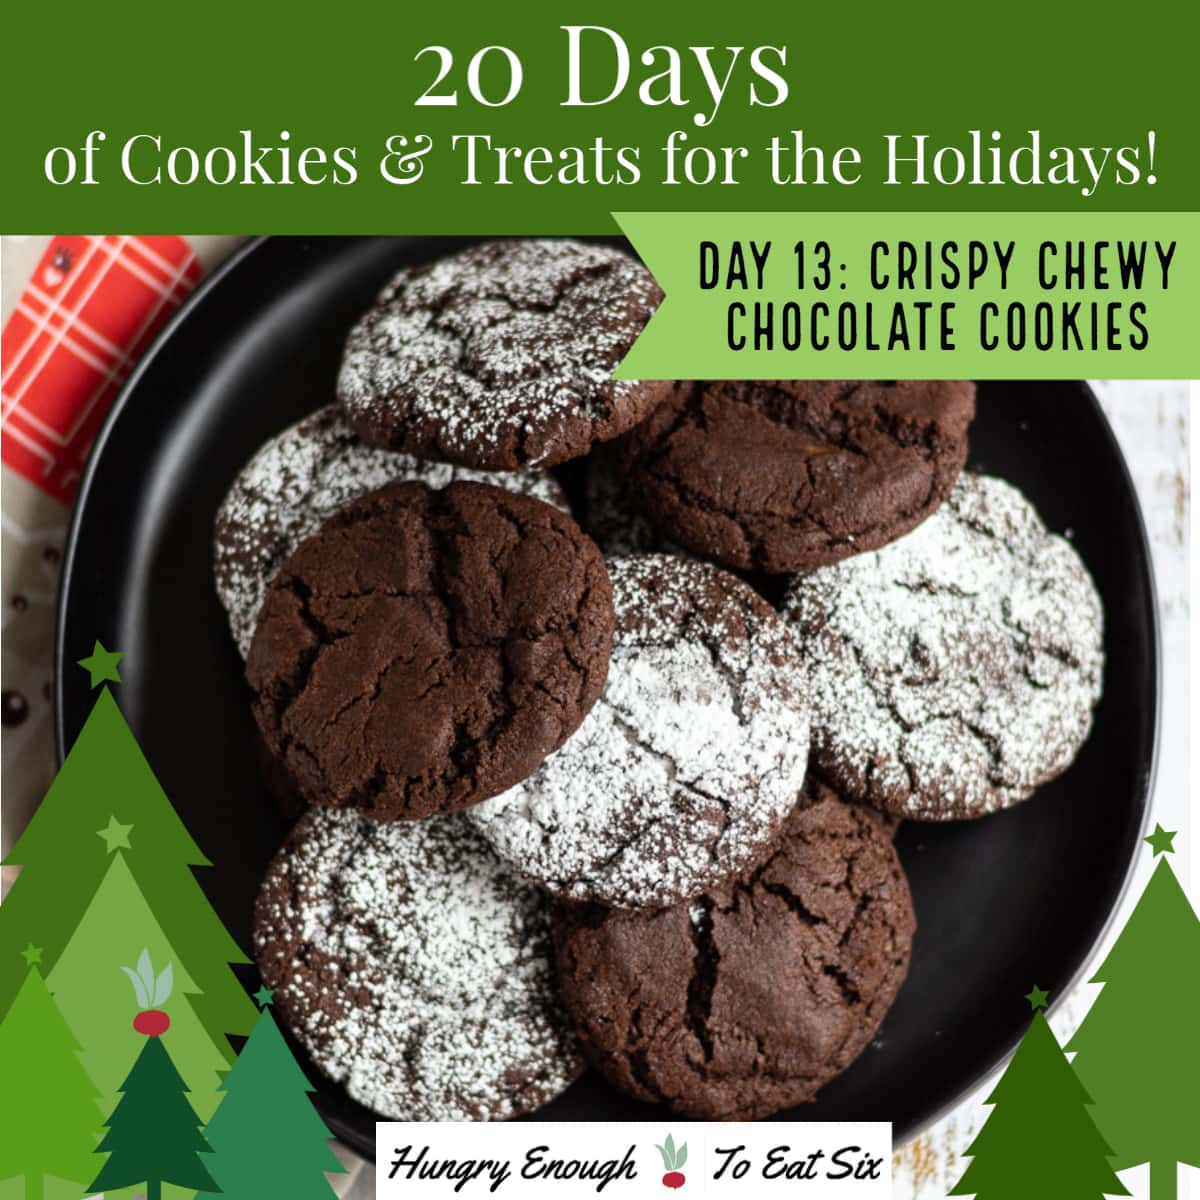 Sugar dusted chocolate cookies on a black plate